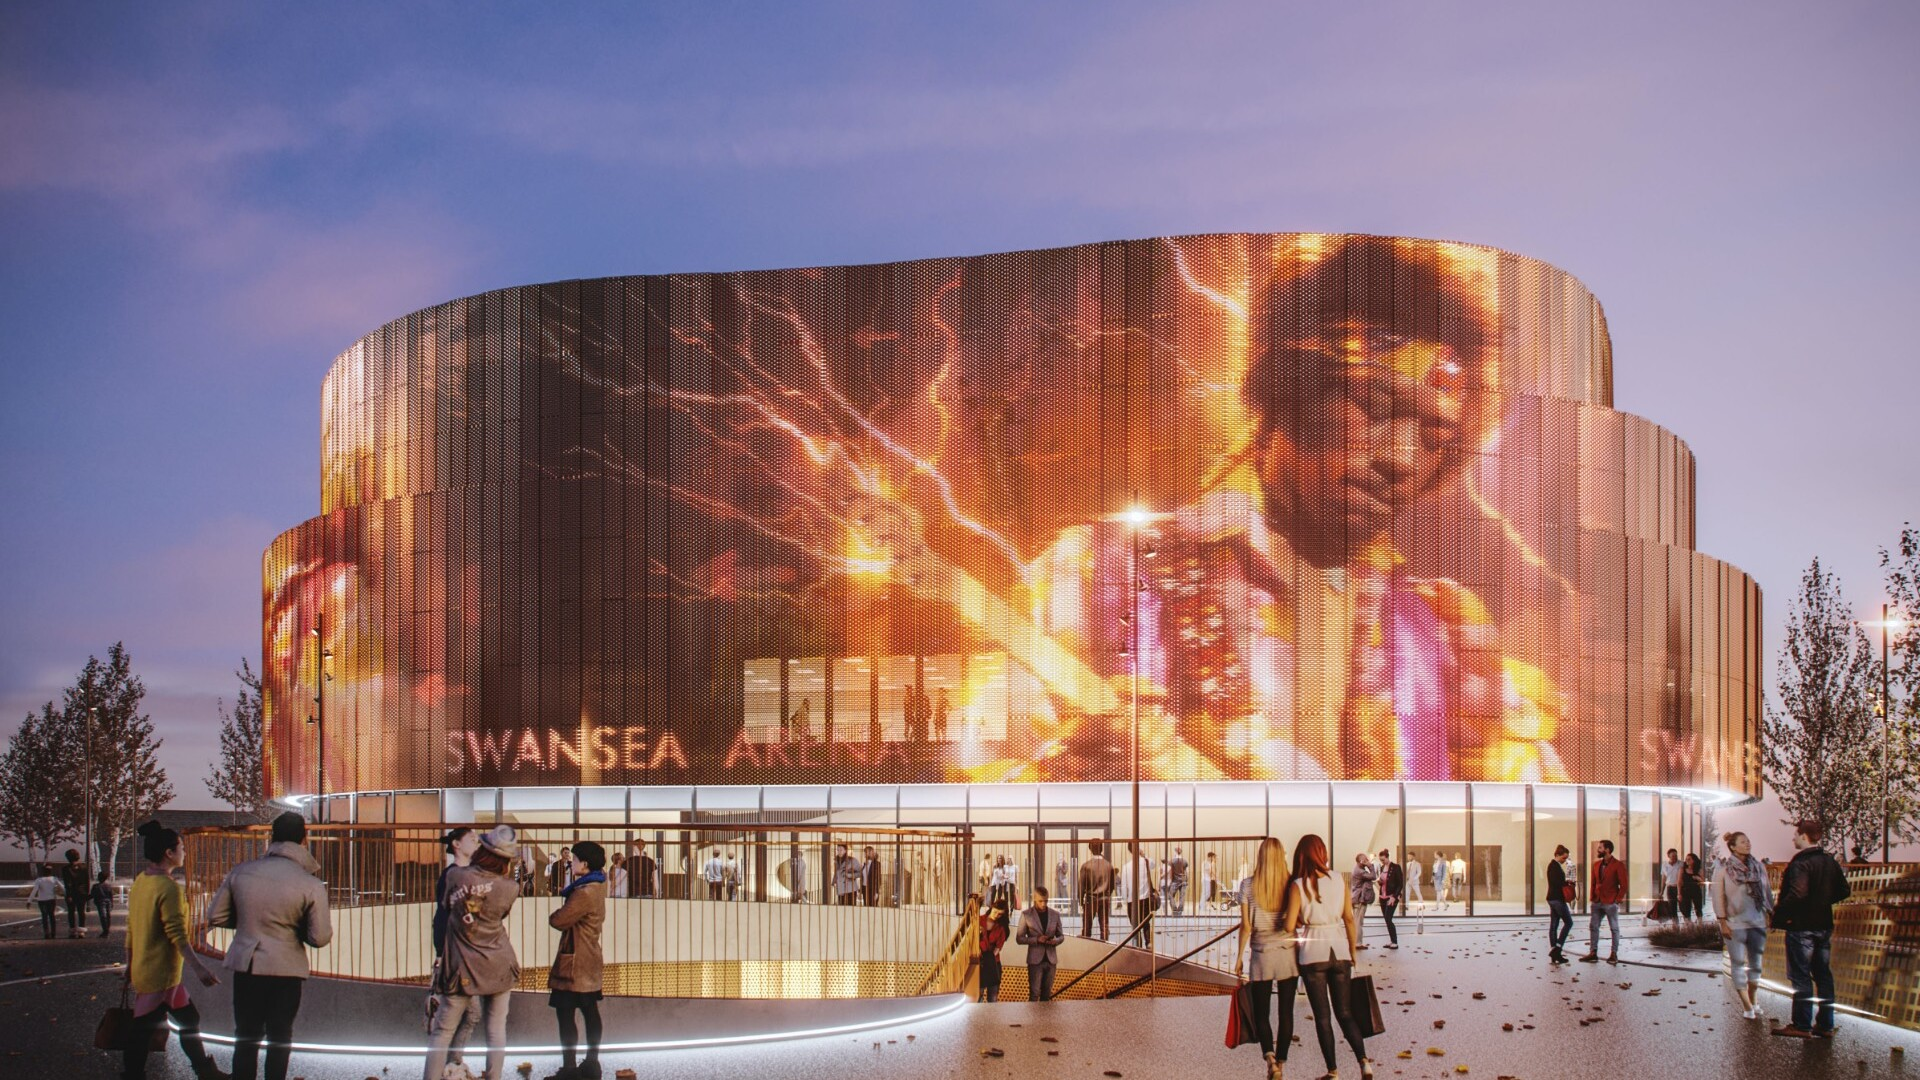 CGI of the new Swansea Central arena